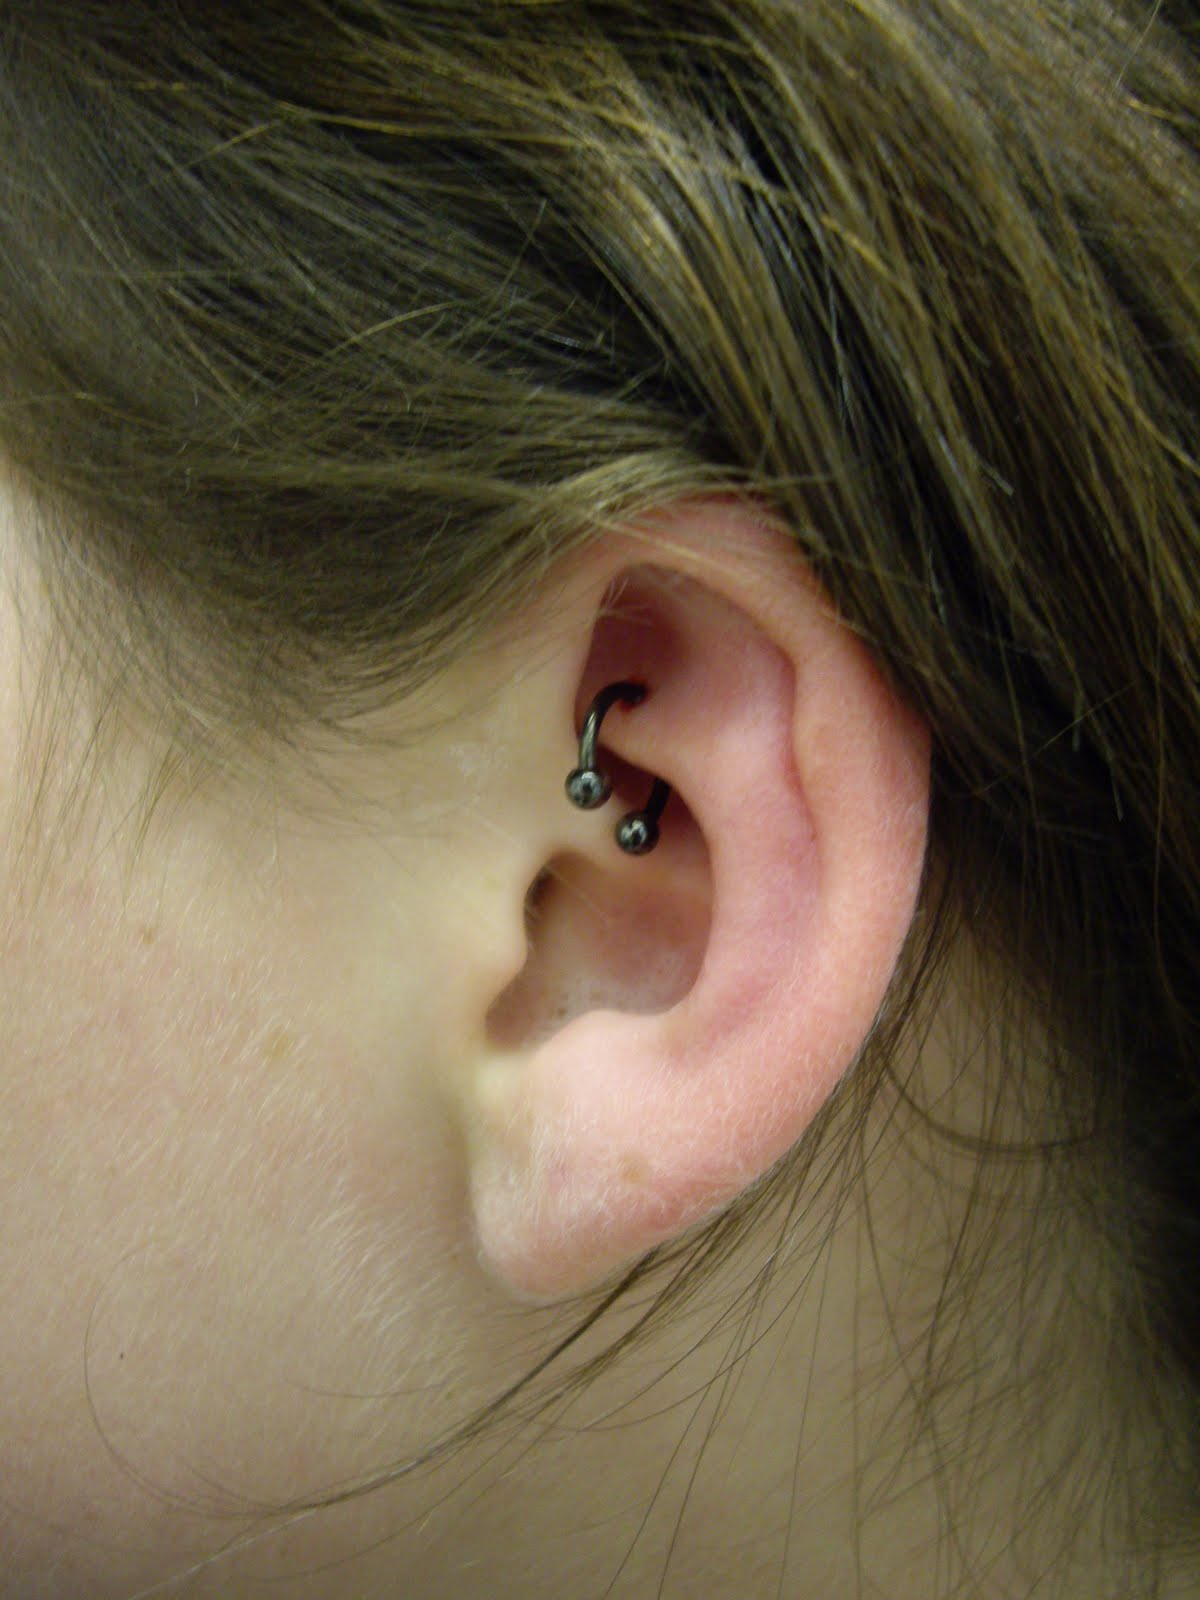 ear piercing rook - photo #43